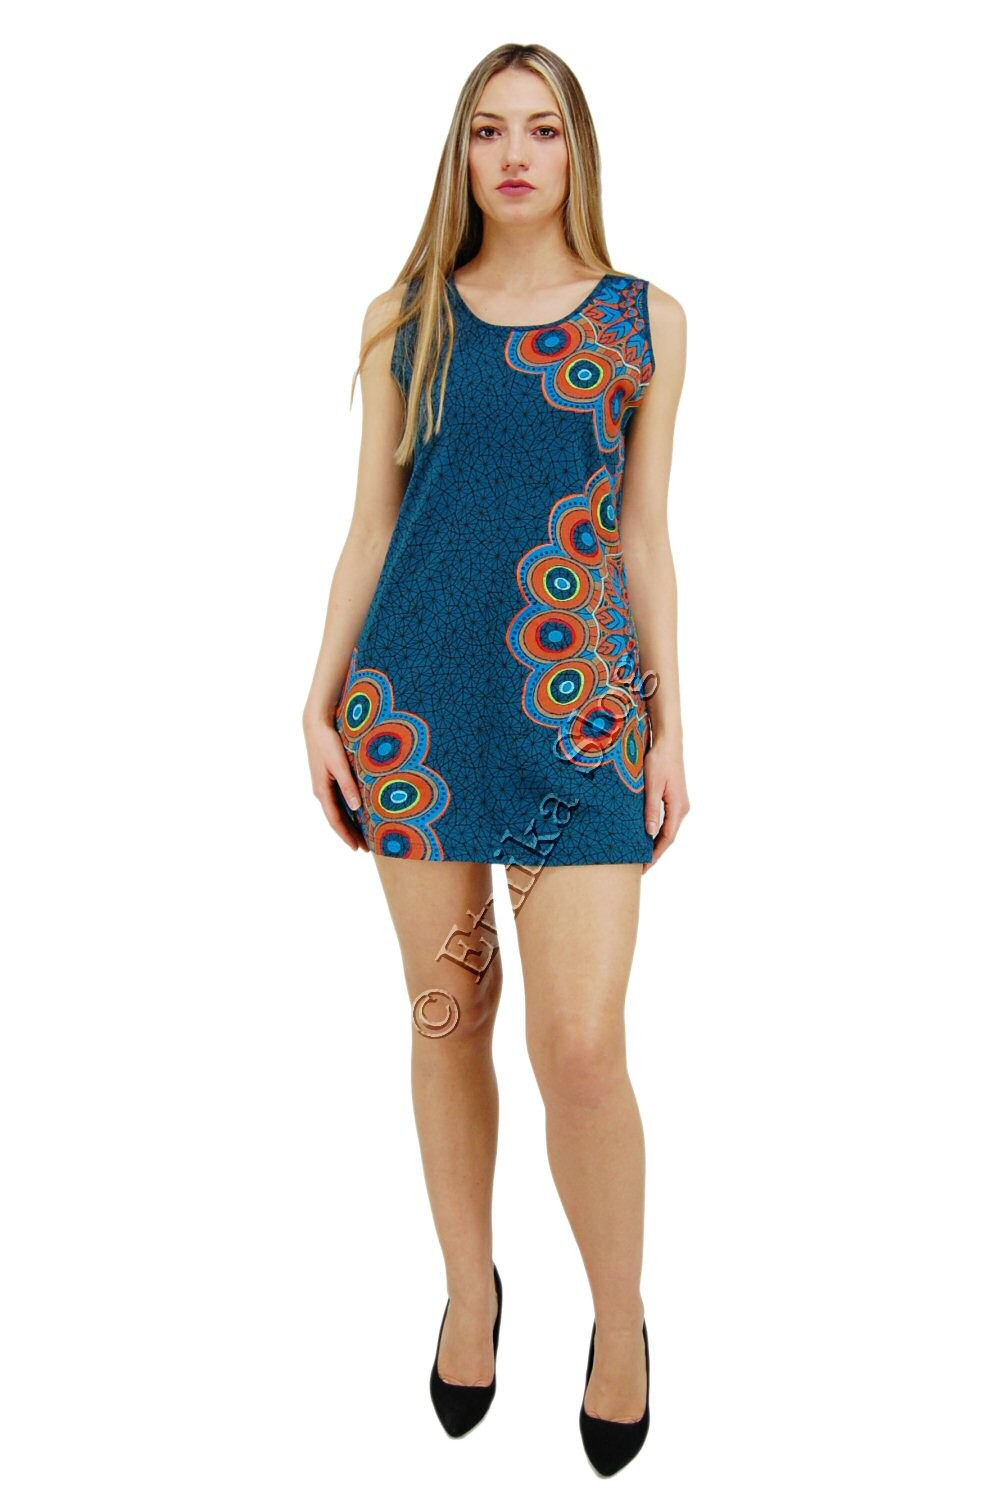 SHORT SLEEVE AND SLEEVELESS COTTON DRESSES AB-BSV43 - Oriente Import S.r.l.